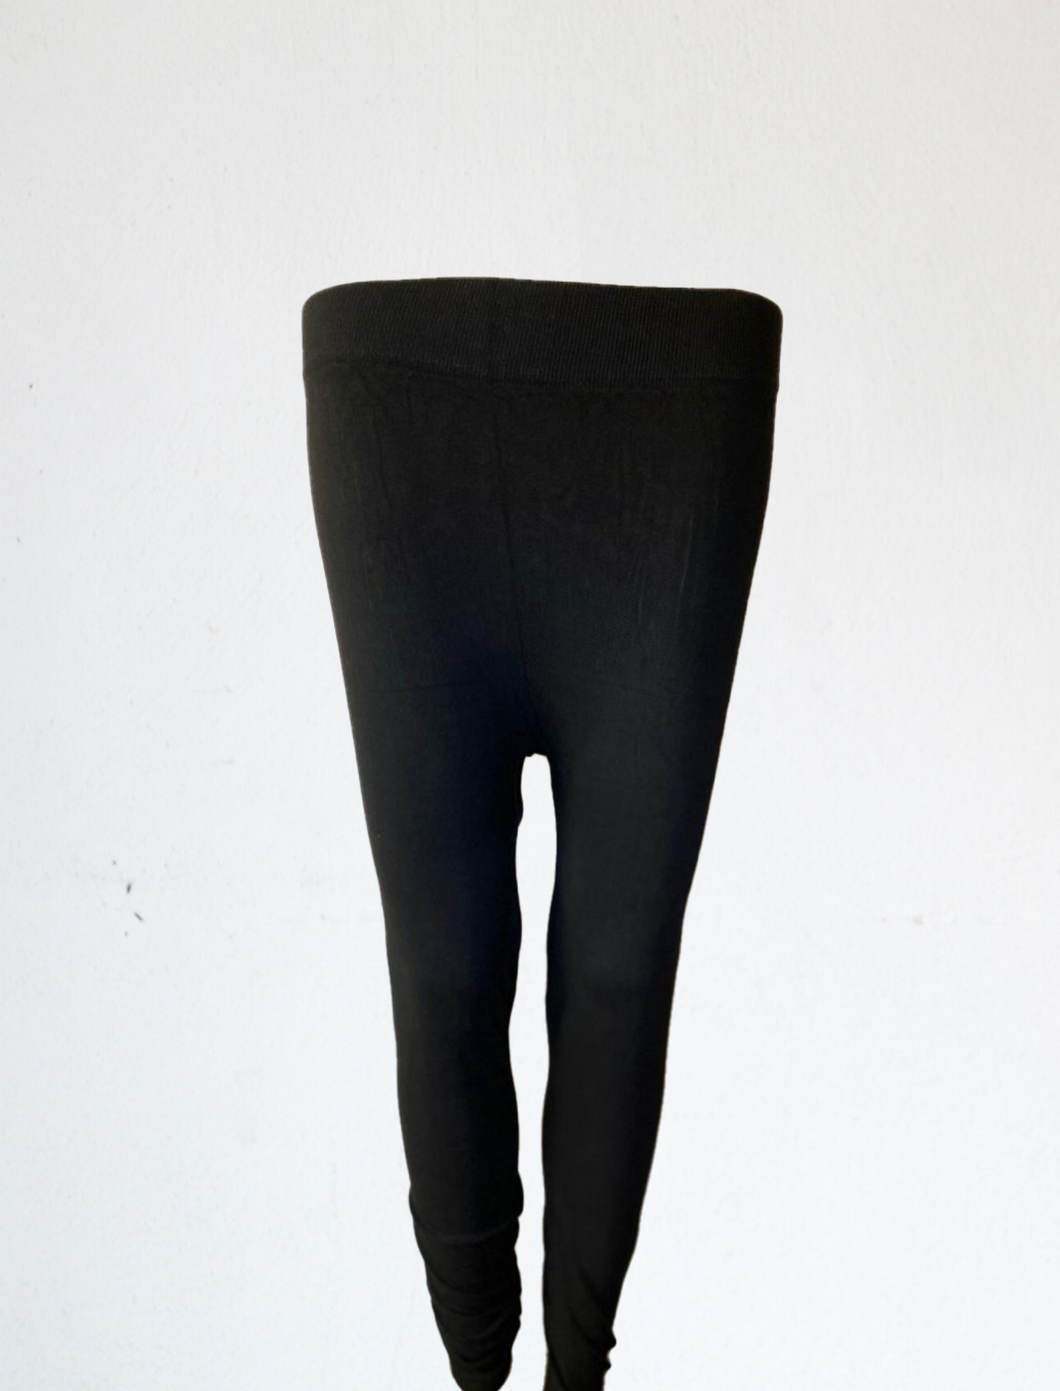 Women's Leggings for Tops, Dresses and Other Modest Outfits R1L-108-BK-FZ